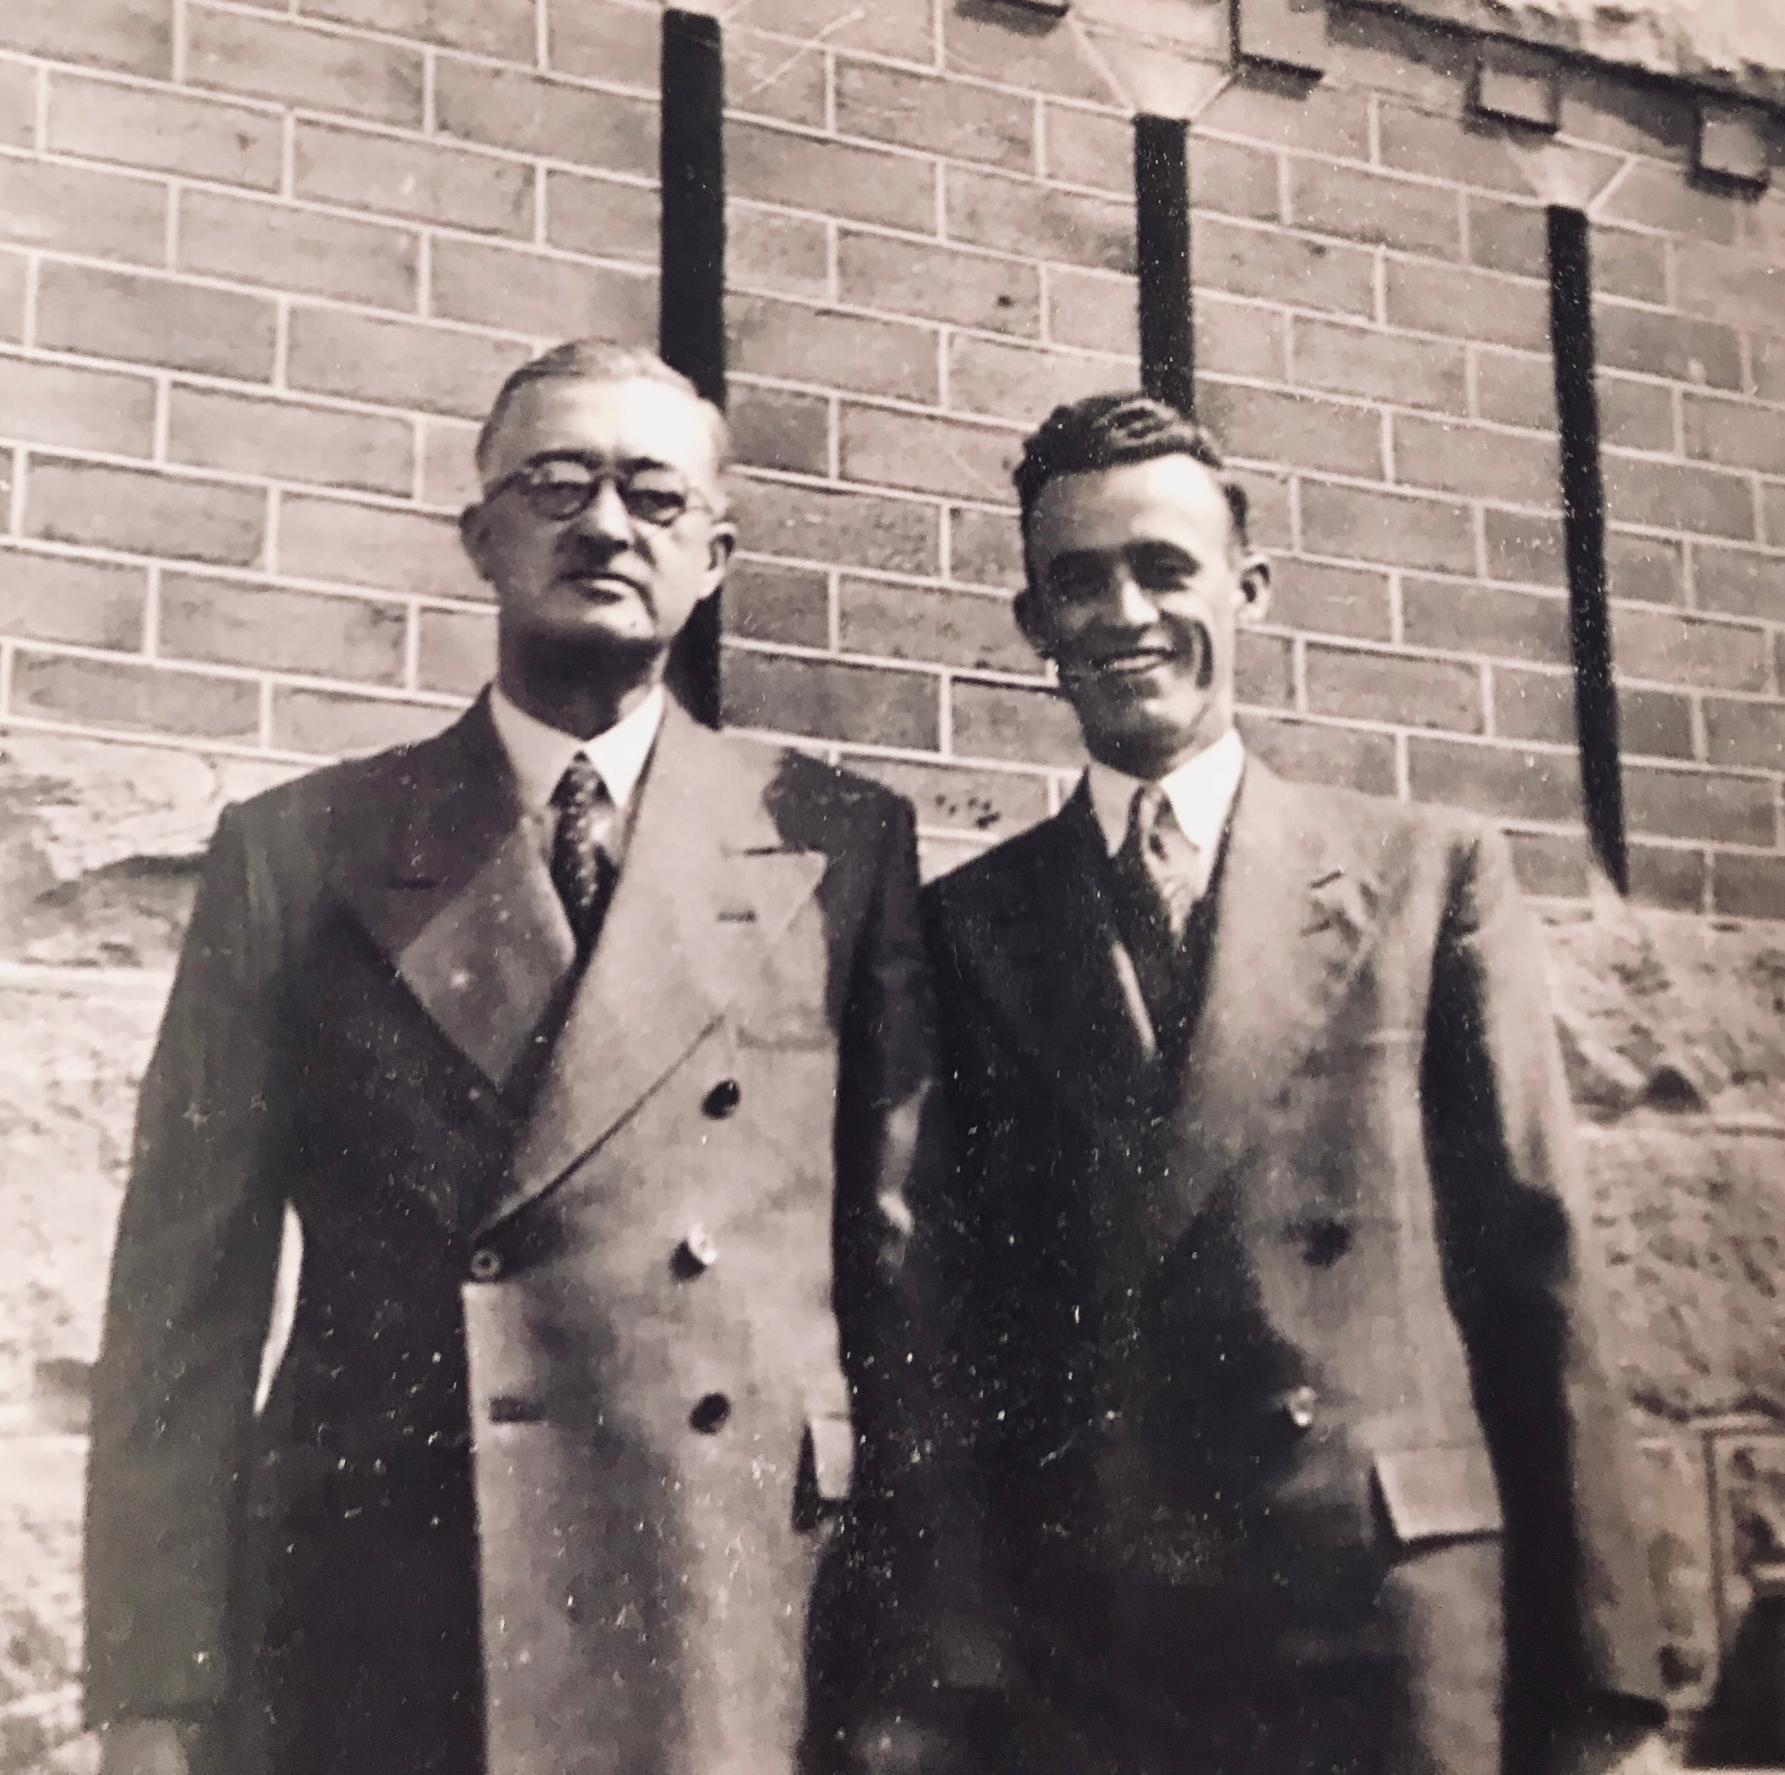 My father James and my brother James, photo taken at my wedding to Beth in 1944